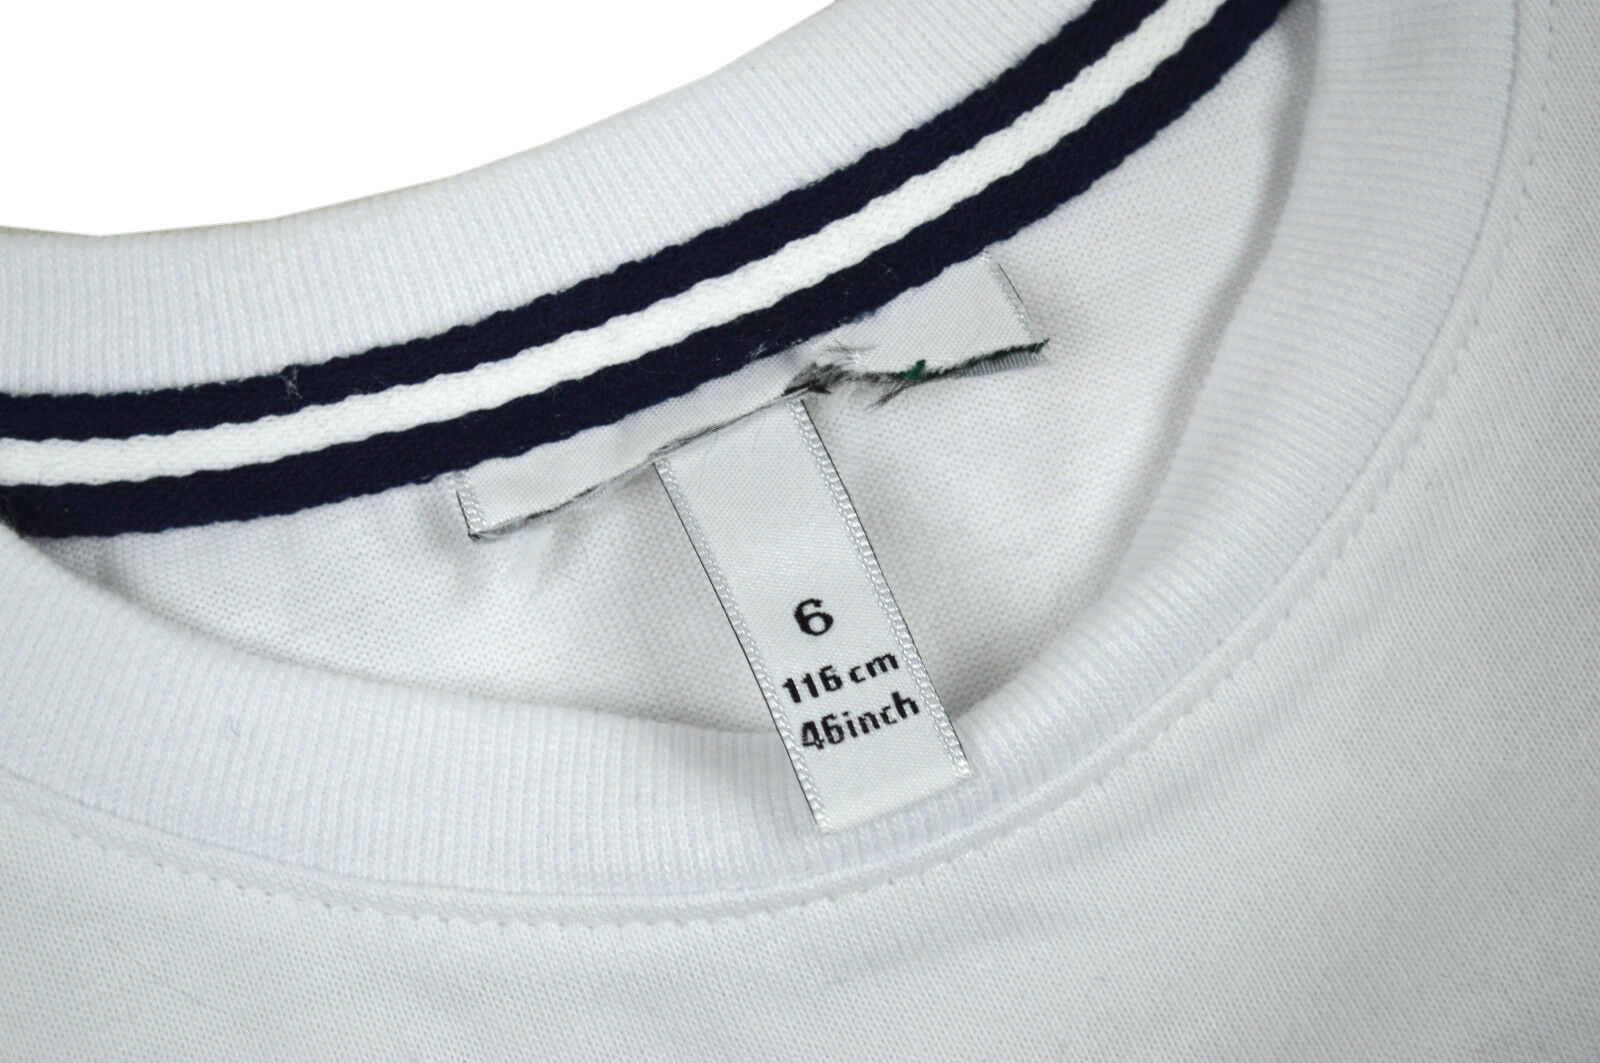 c63c536f8f730 NWD Authentic Lacoste Kids White Blue Tech Striped Cotton Pocket Tee T-Shirt  Top